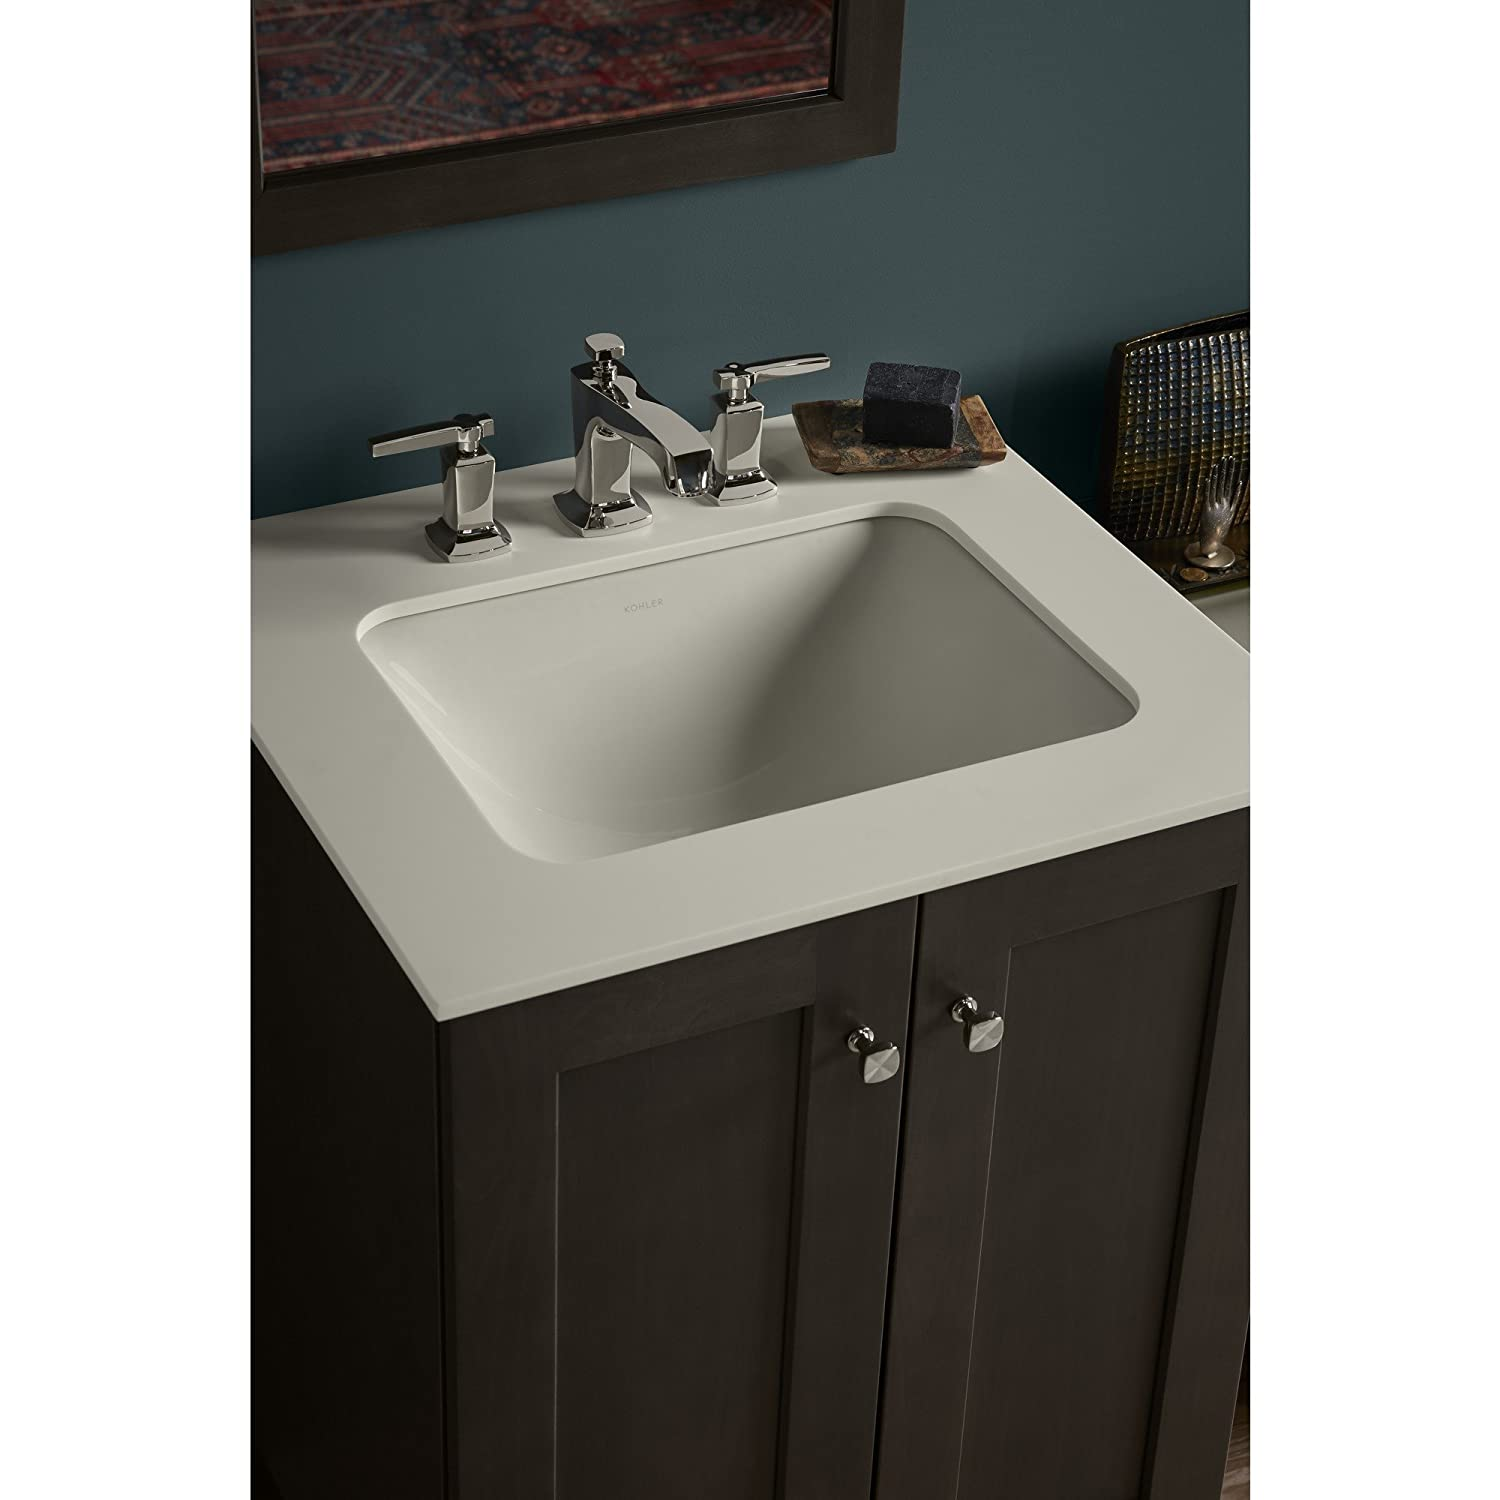 Transolid 1409-7121 25-in x 19-in Cultured Marble Bathroom Vanity Top in White on White